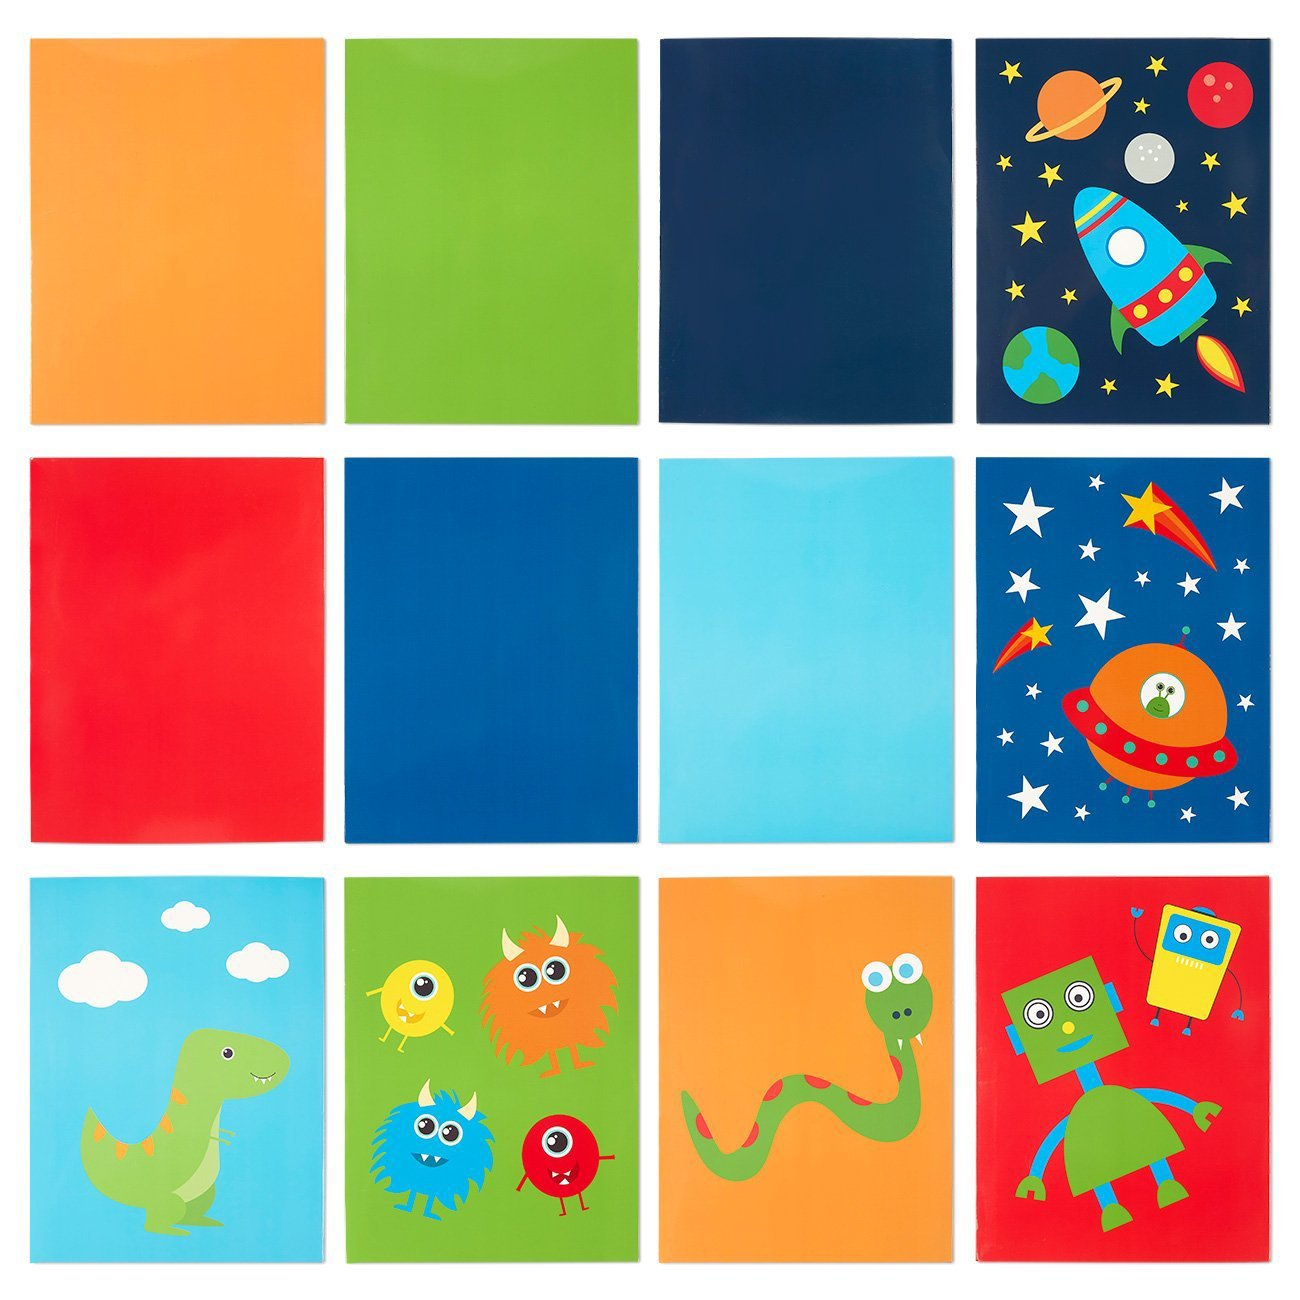 Two Pocket Folders Bulk - 12-Pack Letter Size File Folders, 12 Outer Space and Color Designs, School Folders with Pockets, 12 x 9.25 inches